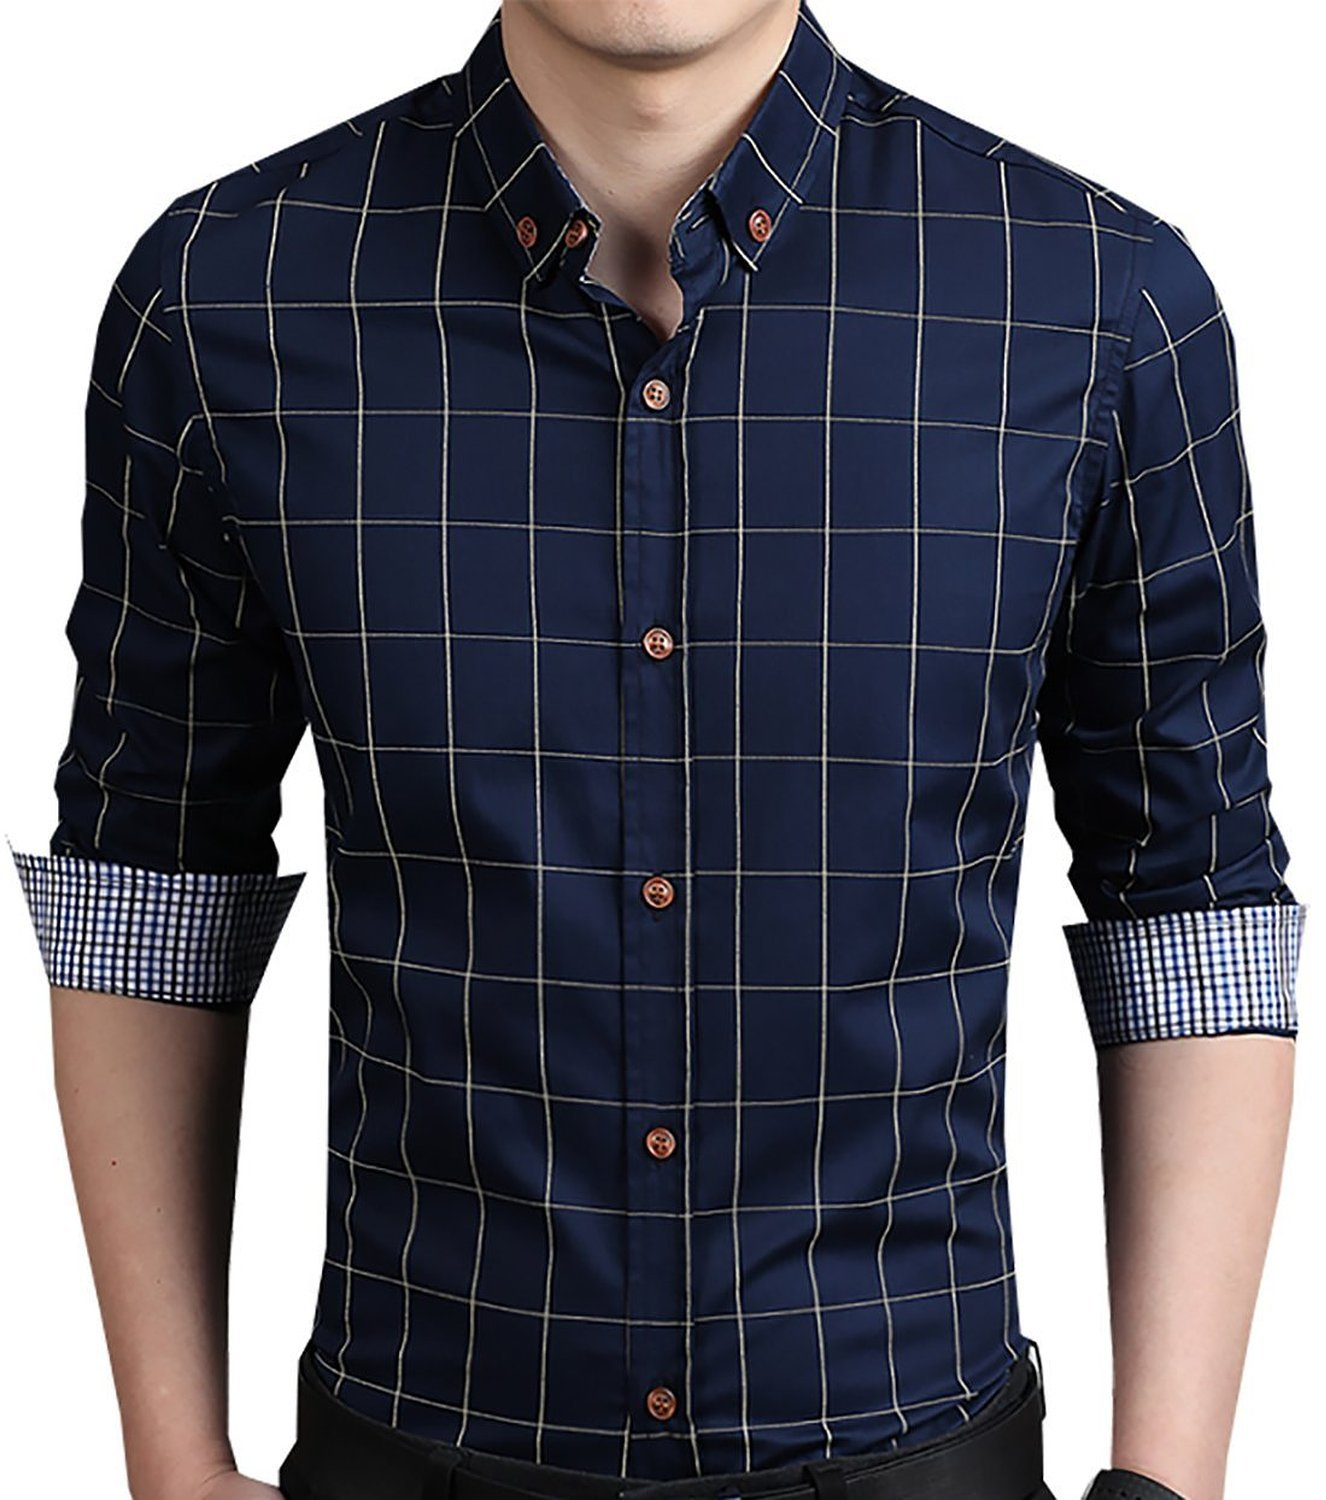 Aiyino Men's 100% Cotton Long Sleeve Plaid Slim Fit Button Down Dress Shirt US XL Navy by Aiyino